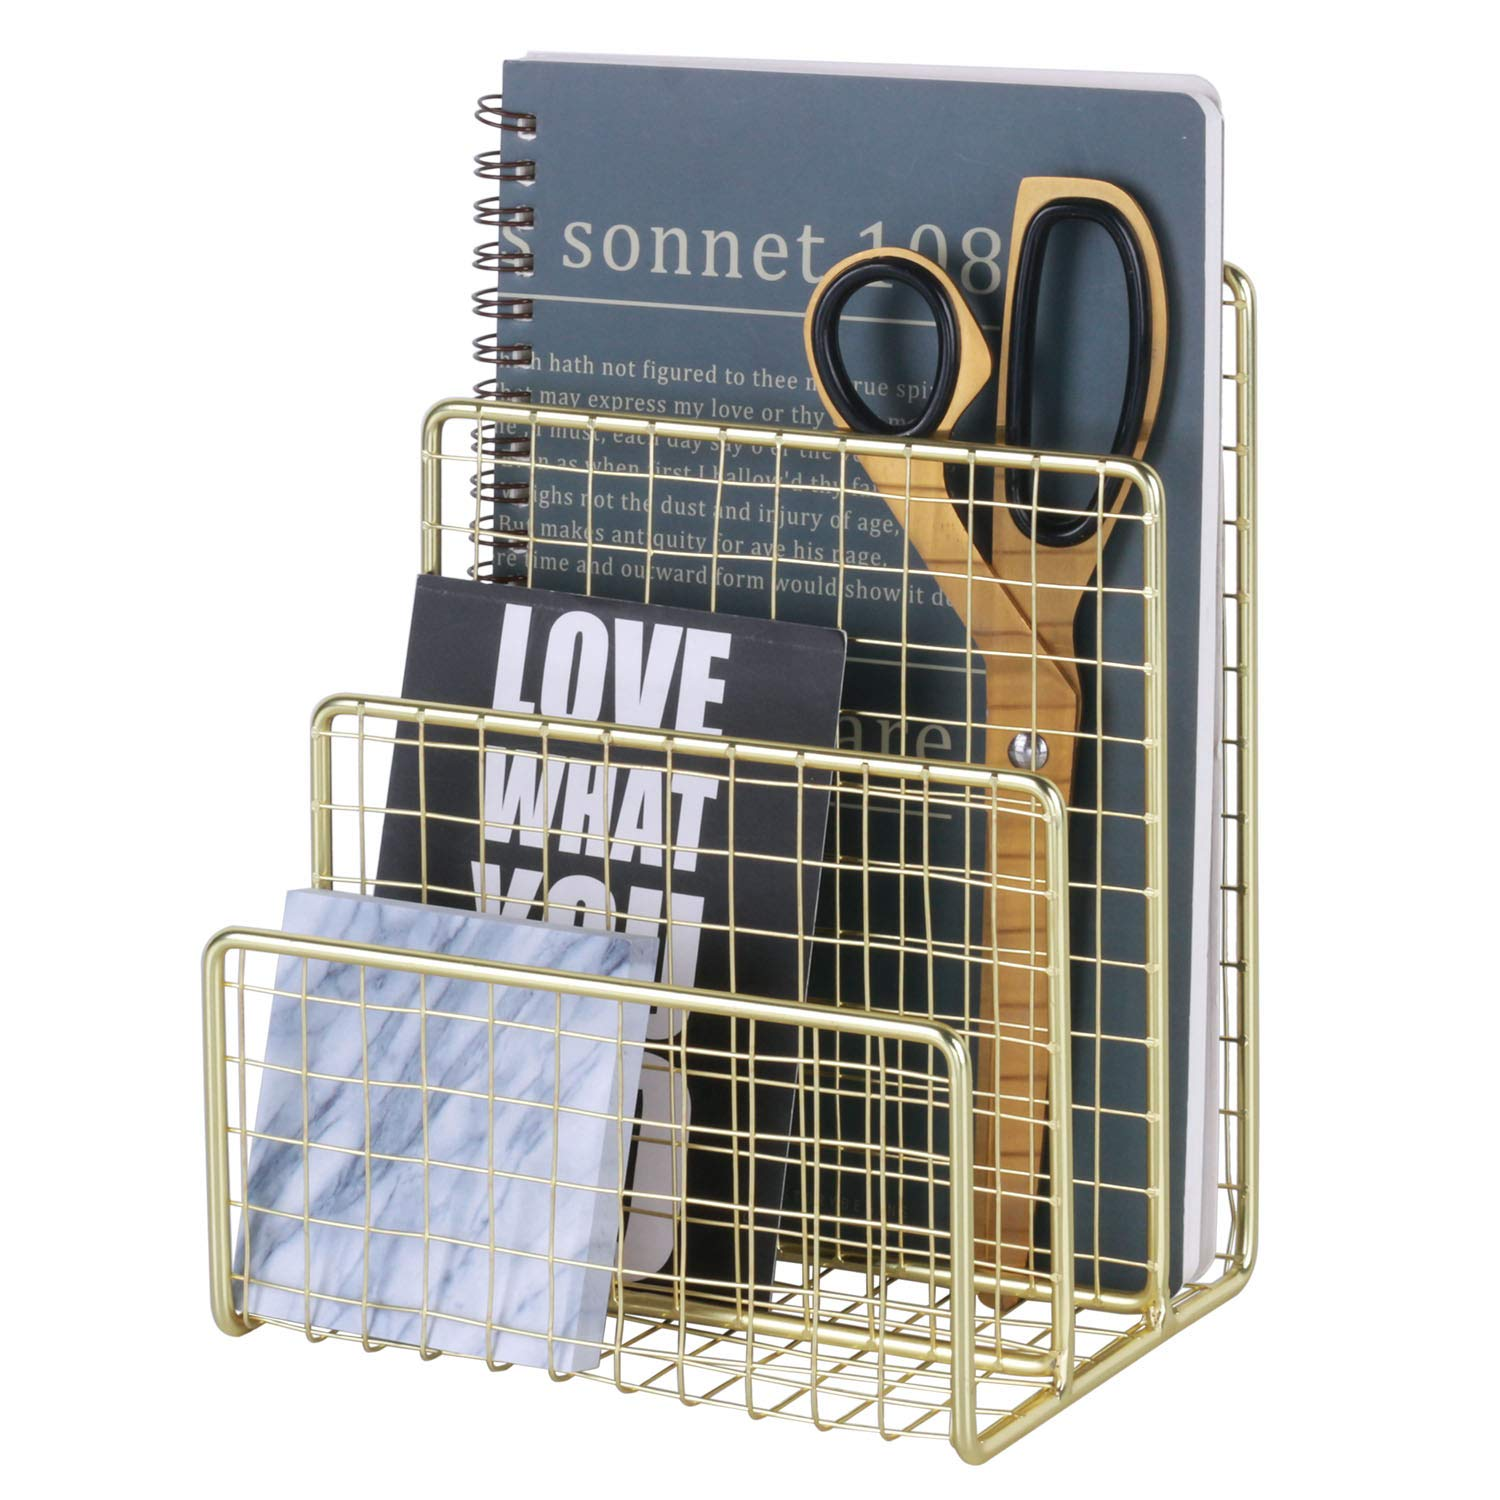 "West Beauty 3 Slots Letter Holder, Metal Multifunctional File Holder for Mails, Books, Brochures and Postcards, Desktop Office Organizer Decoration, Size 5.6"" x 3.7"" x 7.0"", Gold"